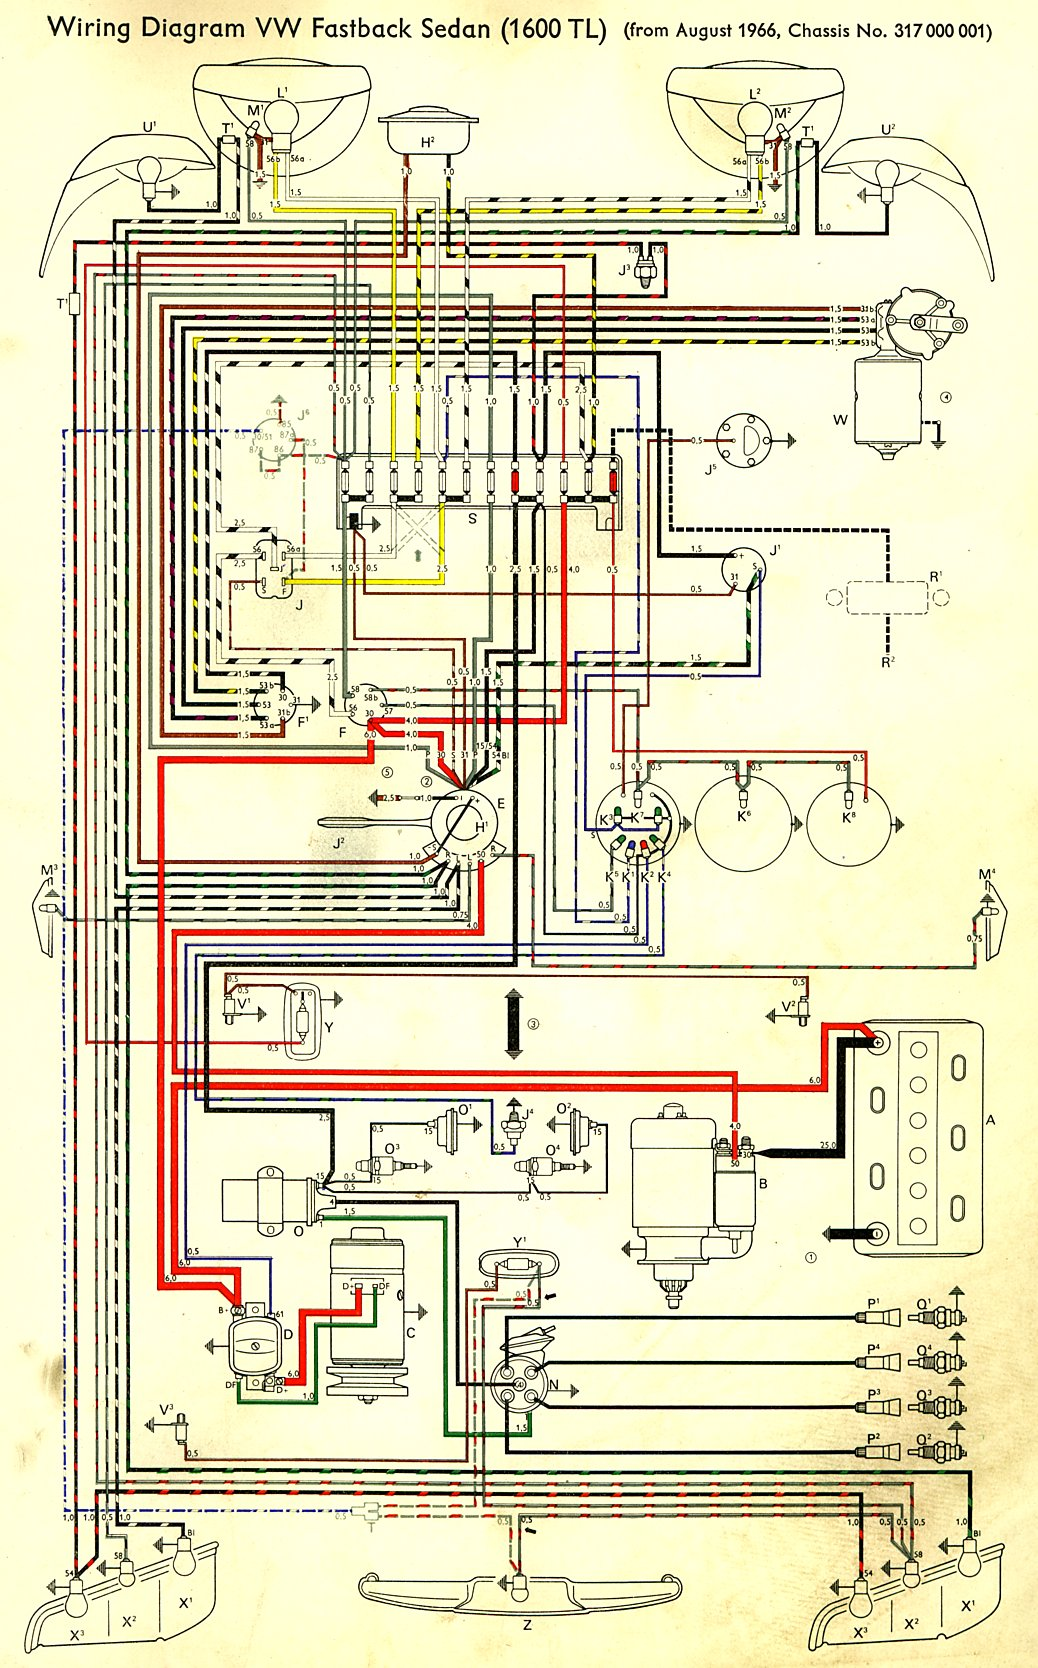 type3_1600TL_67 vw bus wiring diagram 1965 vw bus wiring diagram \u2022 wiring diagrams 1965 vw bus wiring harness at mifinder.co